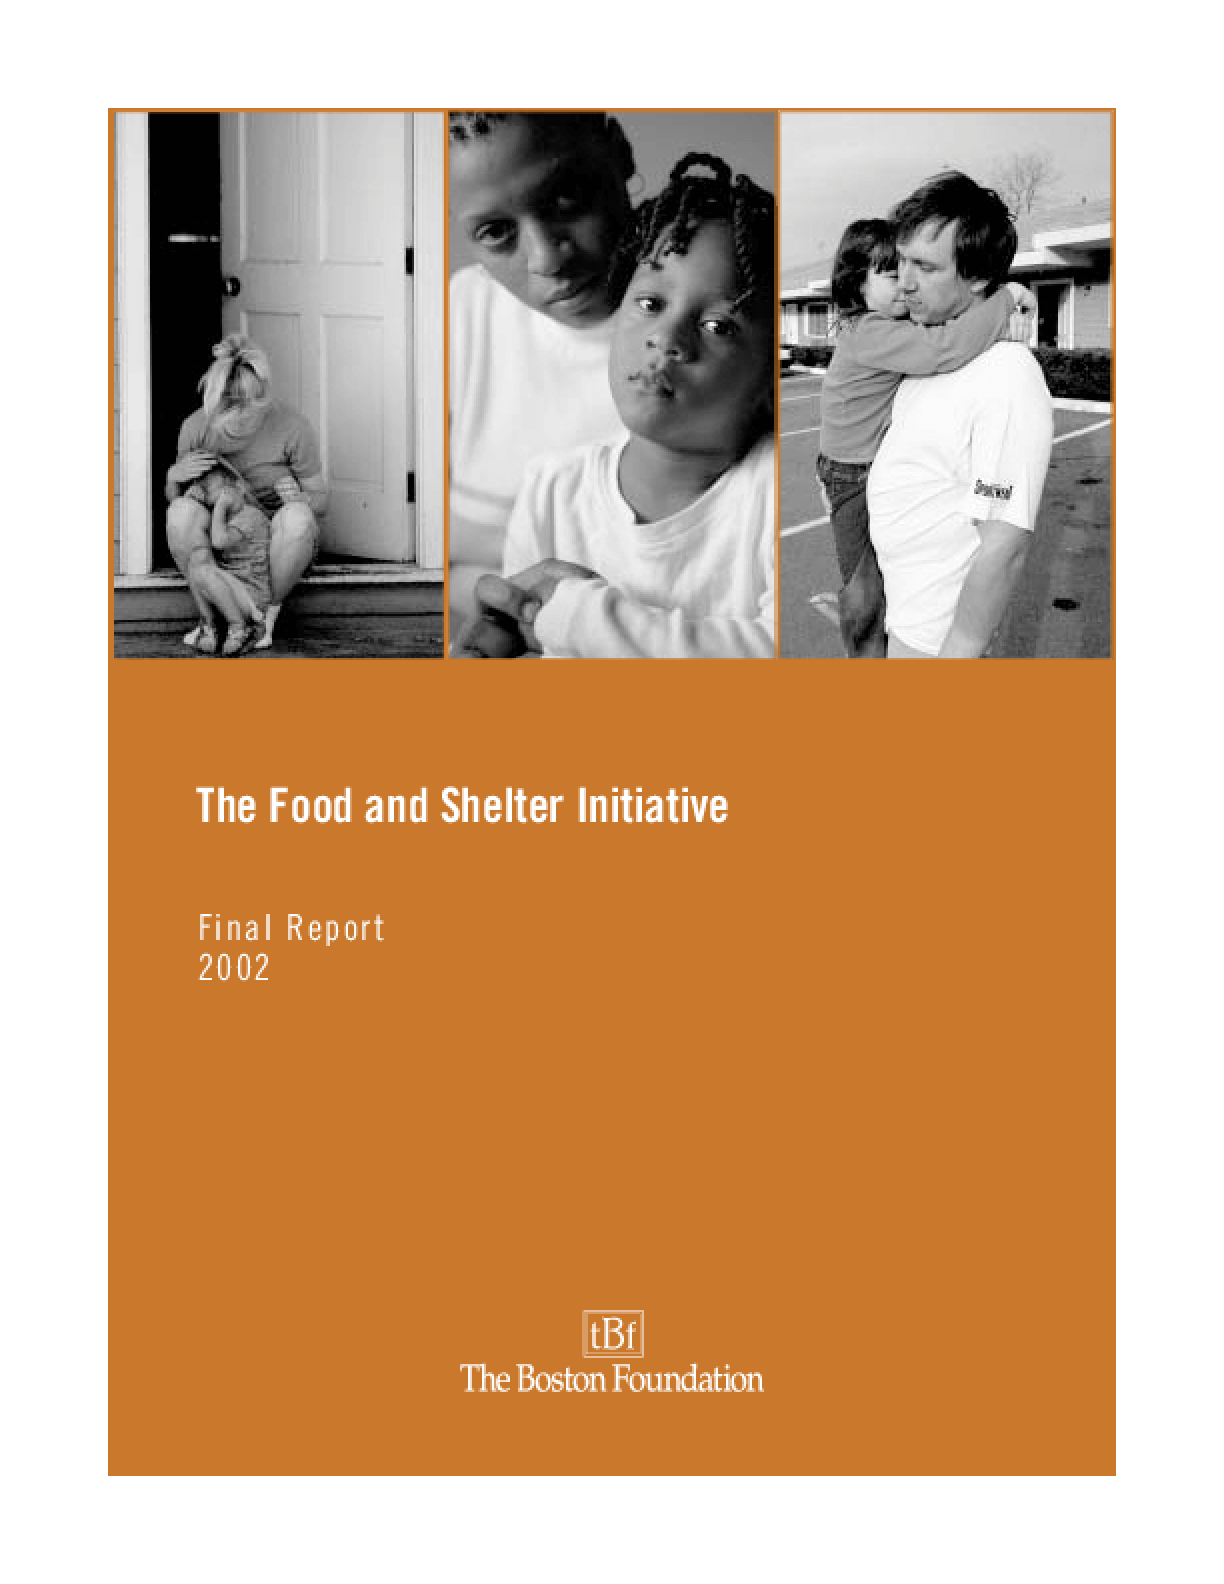 The Food and Shelter Initiative: Final Report